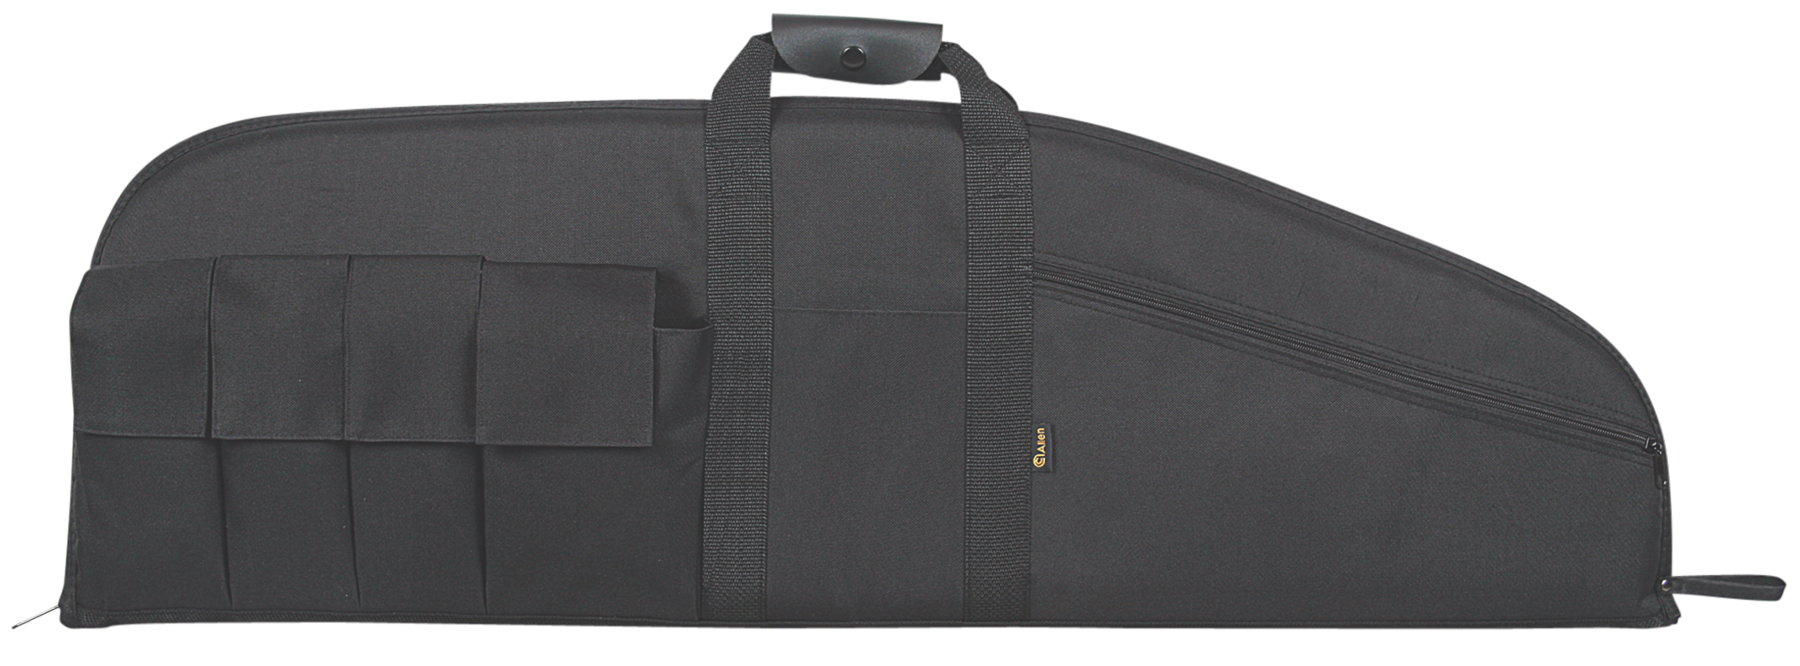 Allen 1063 Assault Rifle Case 32